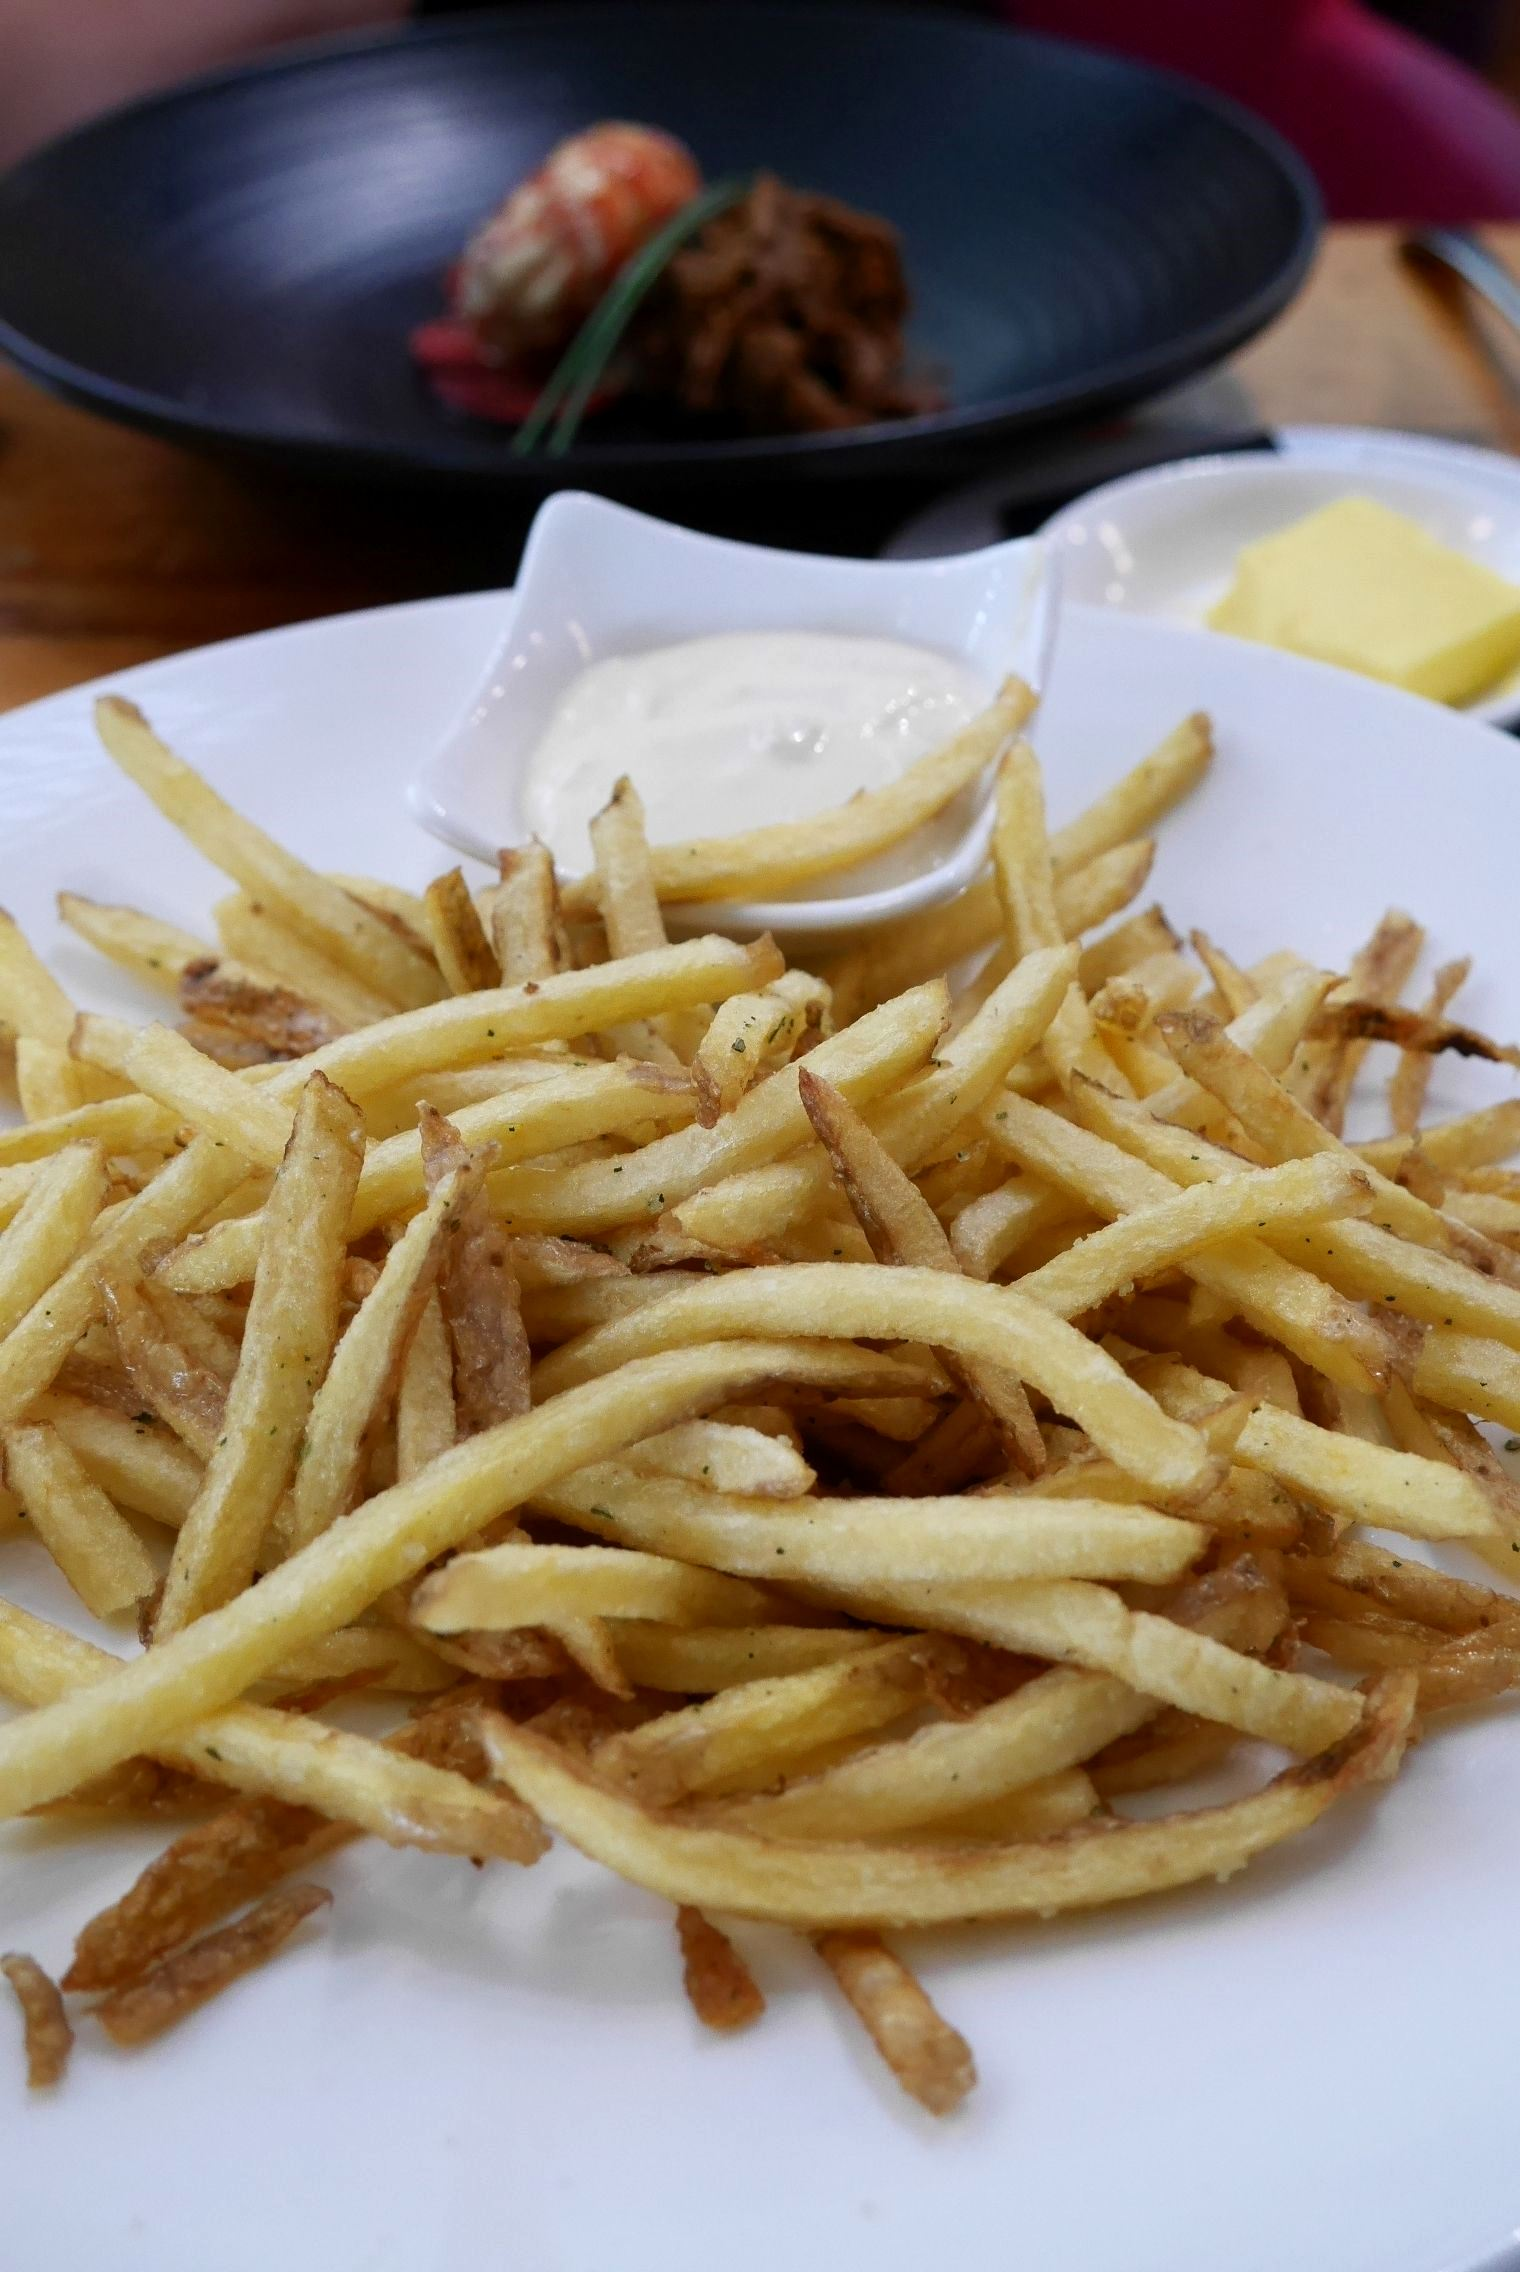 French fries, bay salt (comes with Special rib eye)